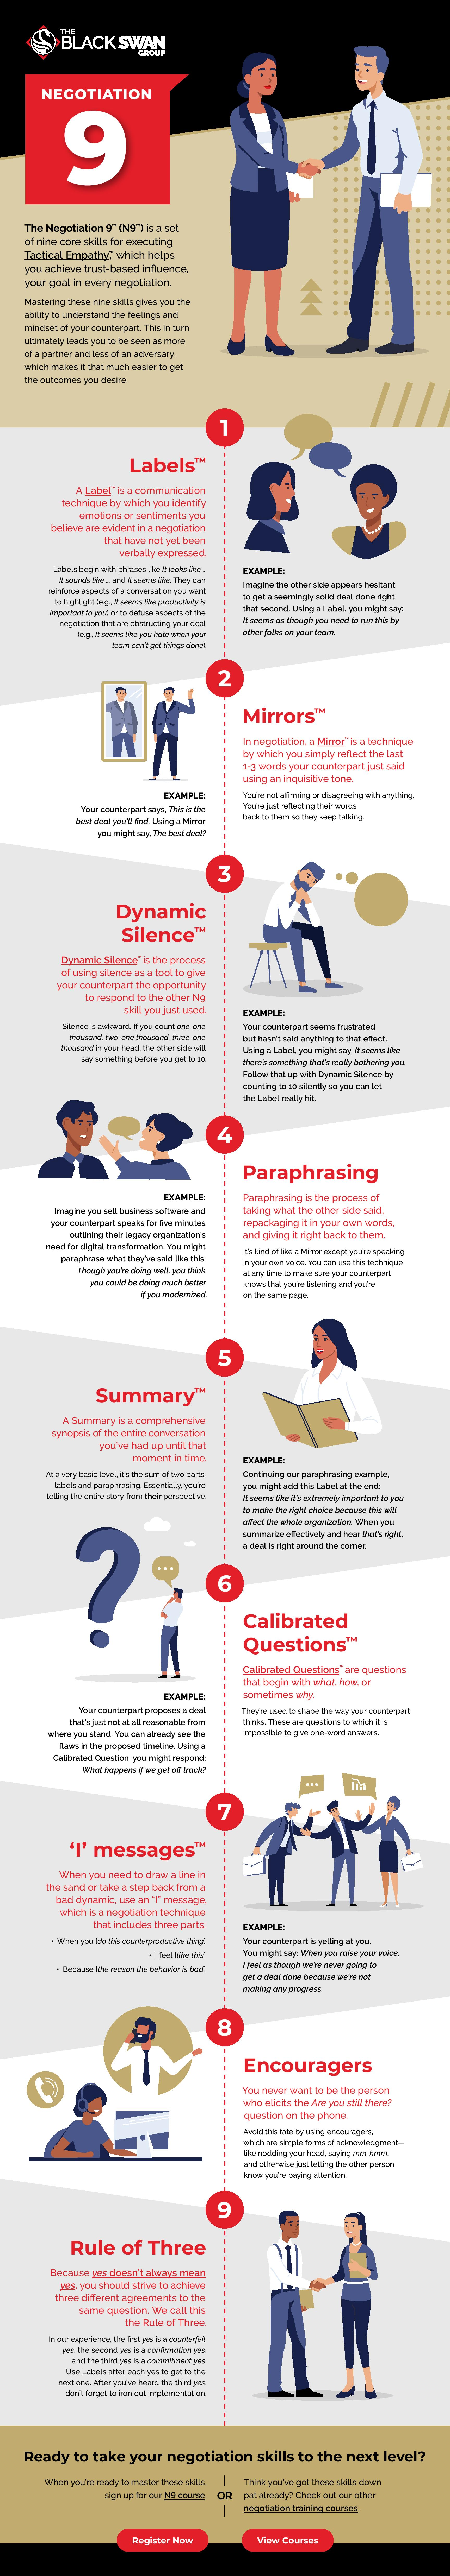 Infographic: The Black Swan Group's Negotiation 9™️️️ (N9™️️️)